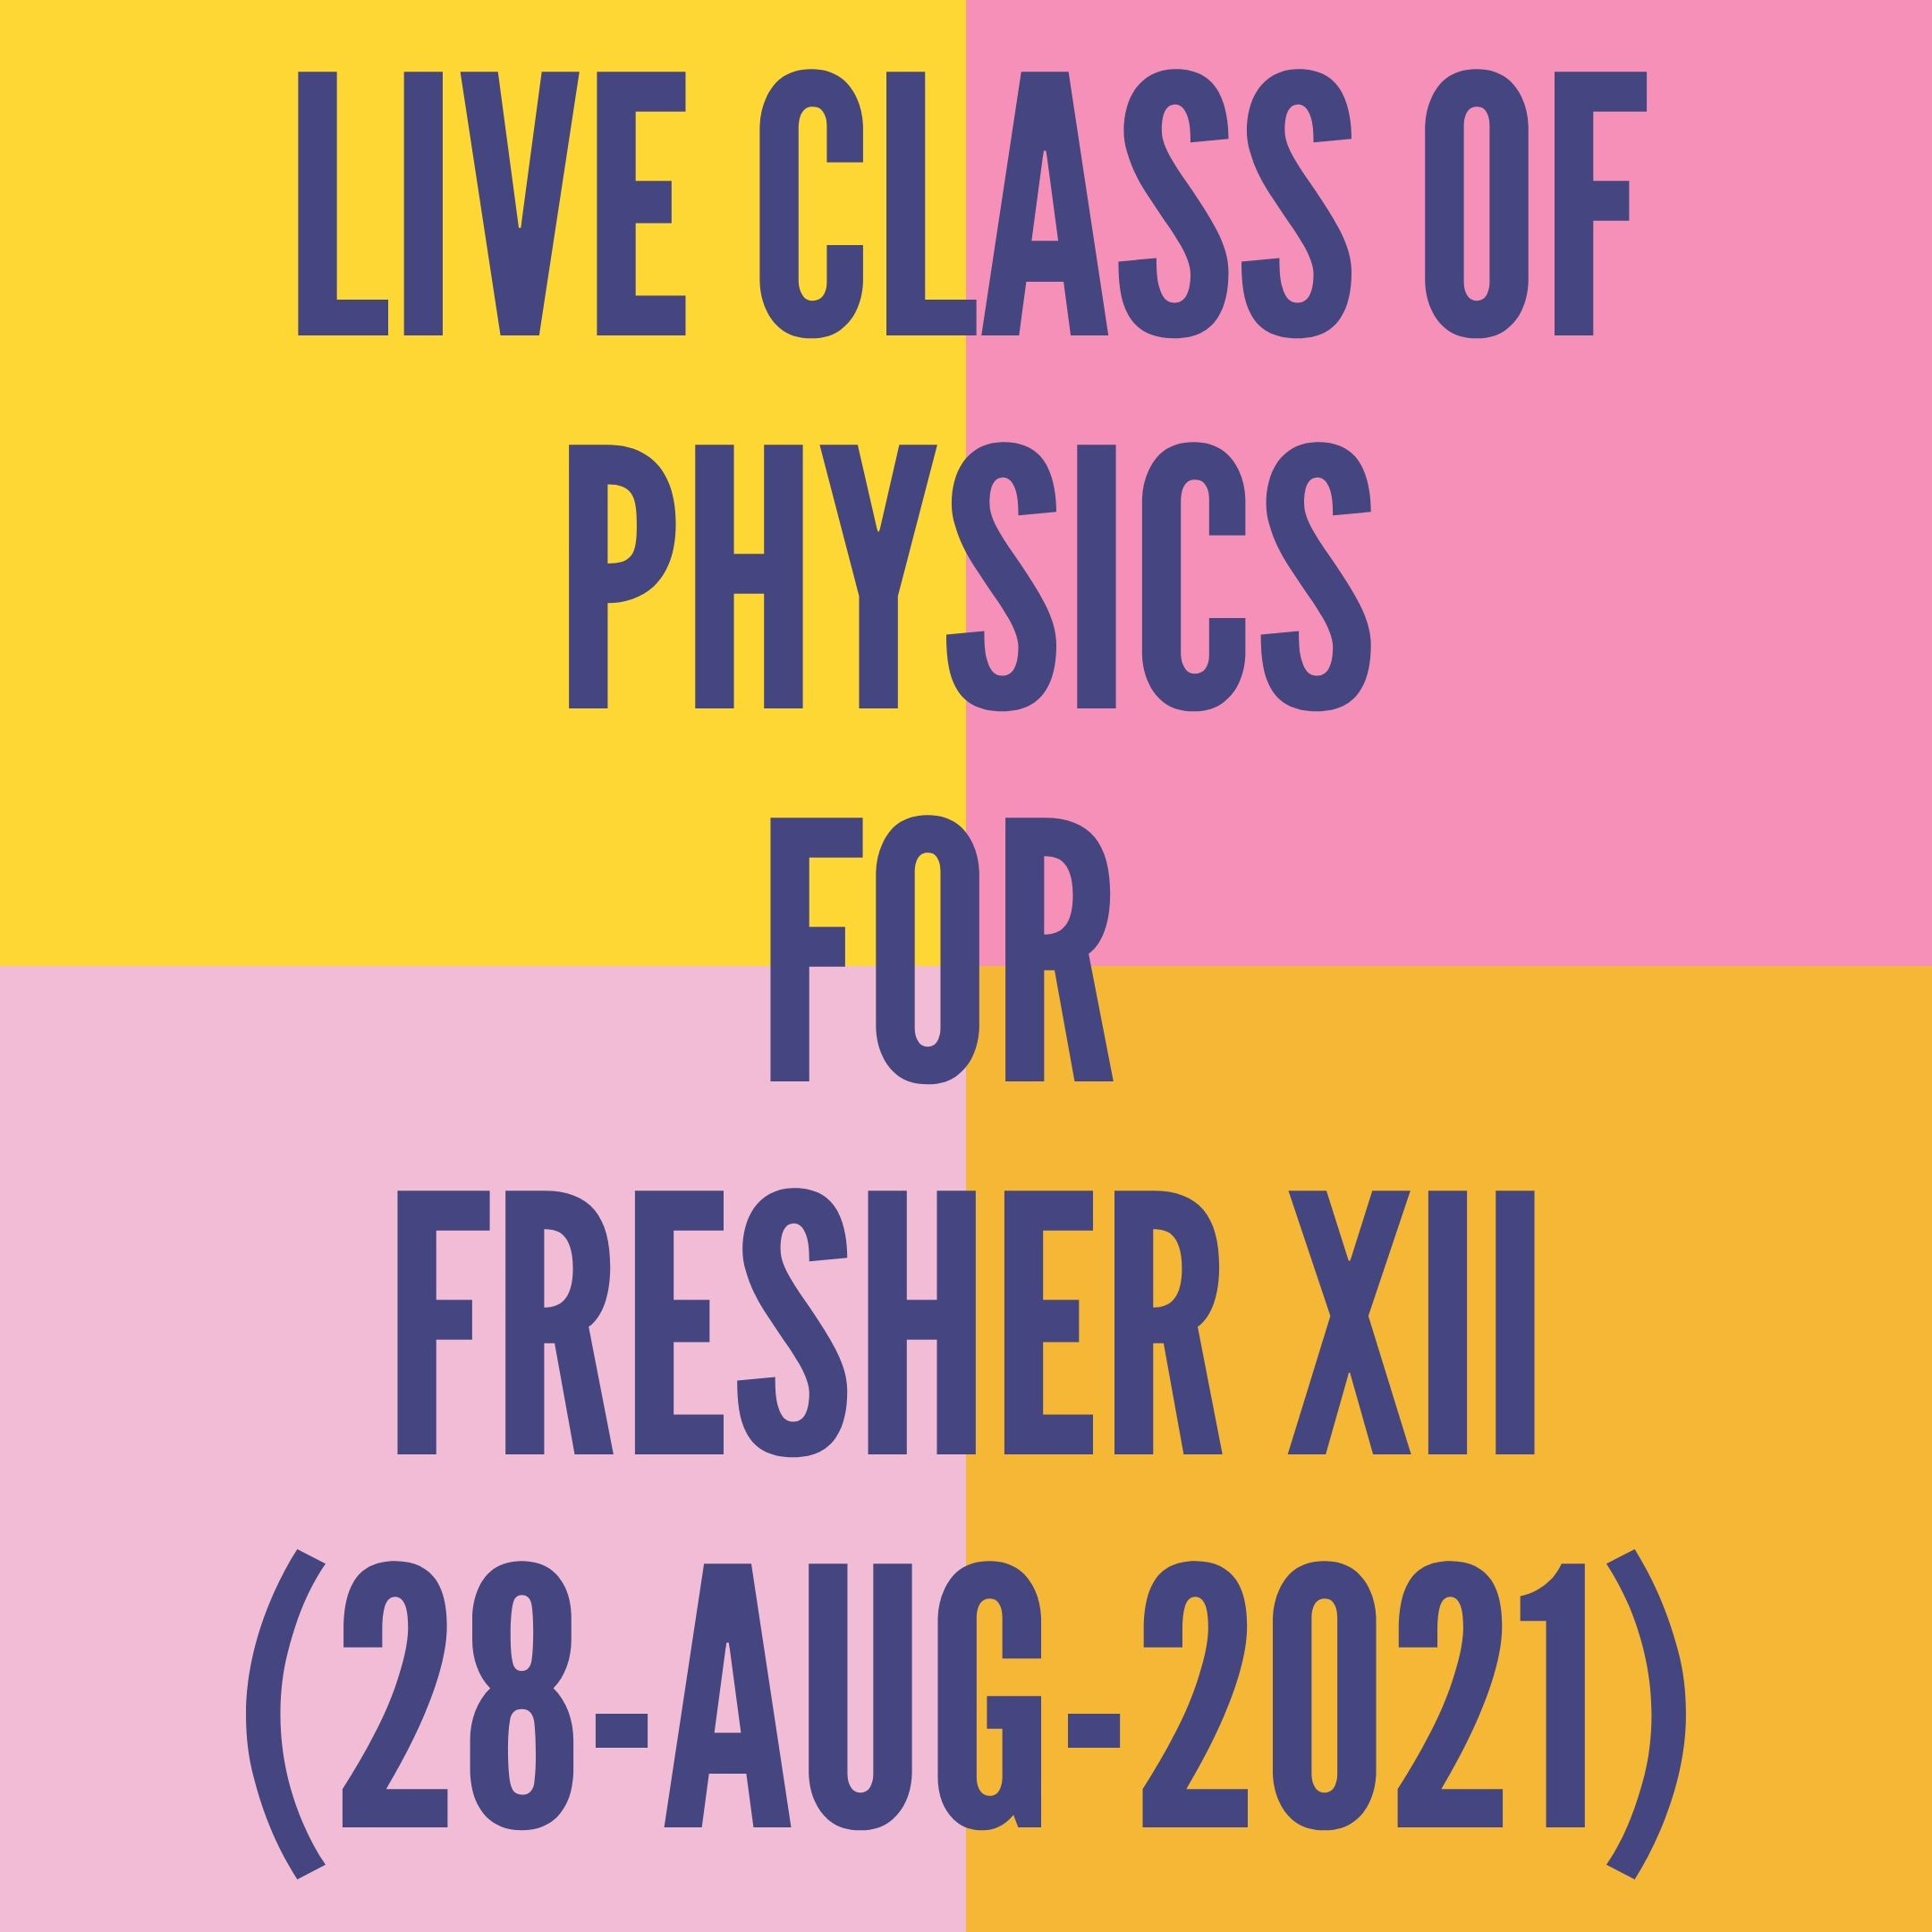 LIVE CLASS OF PHYSICS FOR FRESHER XII (28-AUG-2021) MAGNETIC EFFECT OF CURRENT